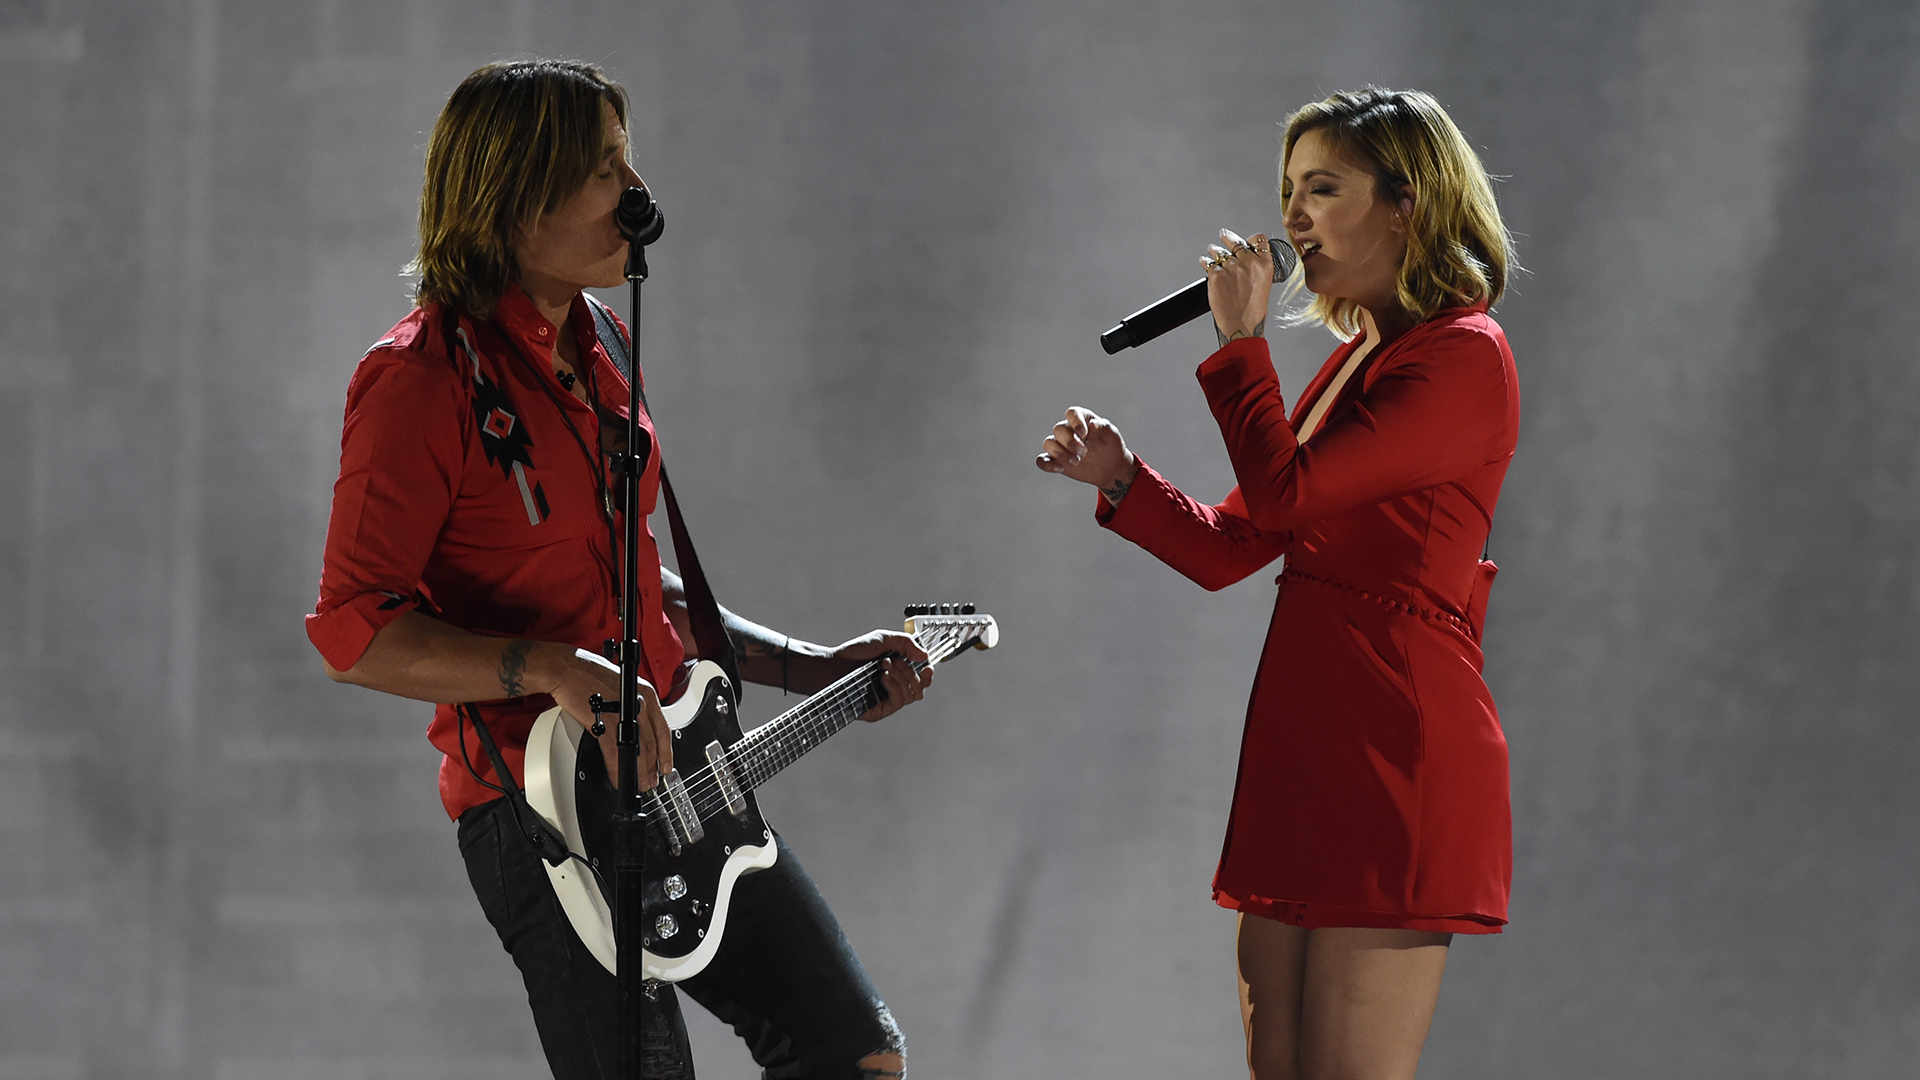 Country-pop veteran Keith Urban takes the stage with Julia Michaels to sing